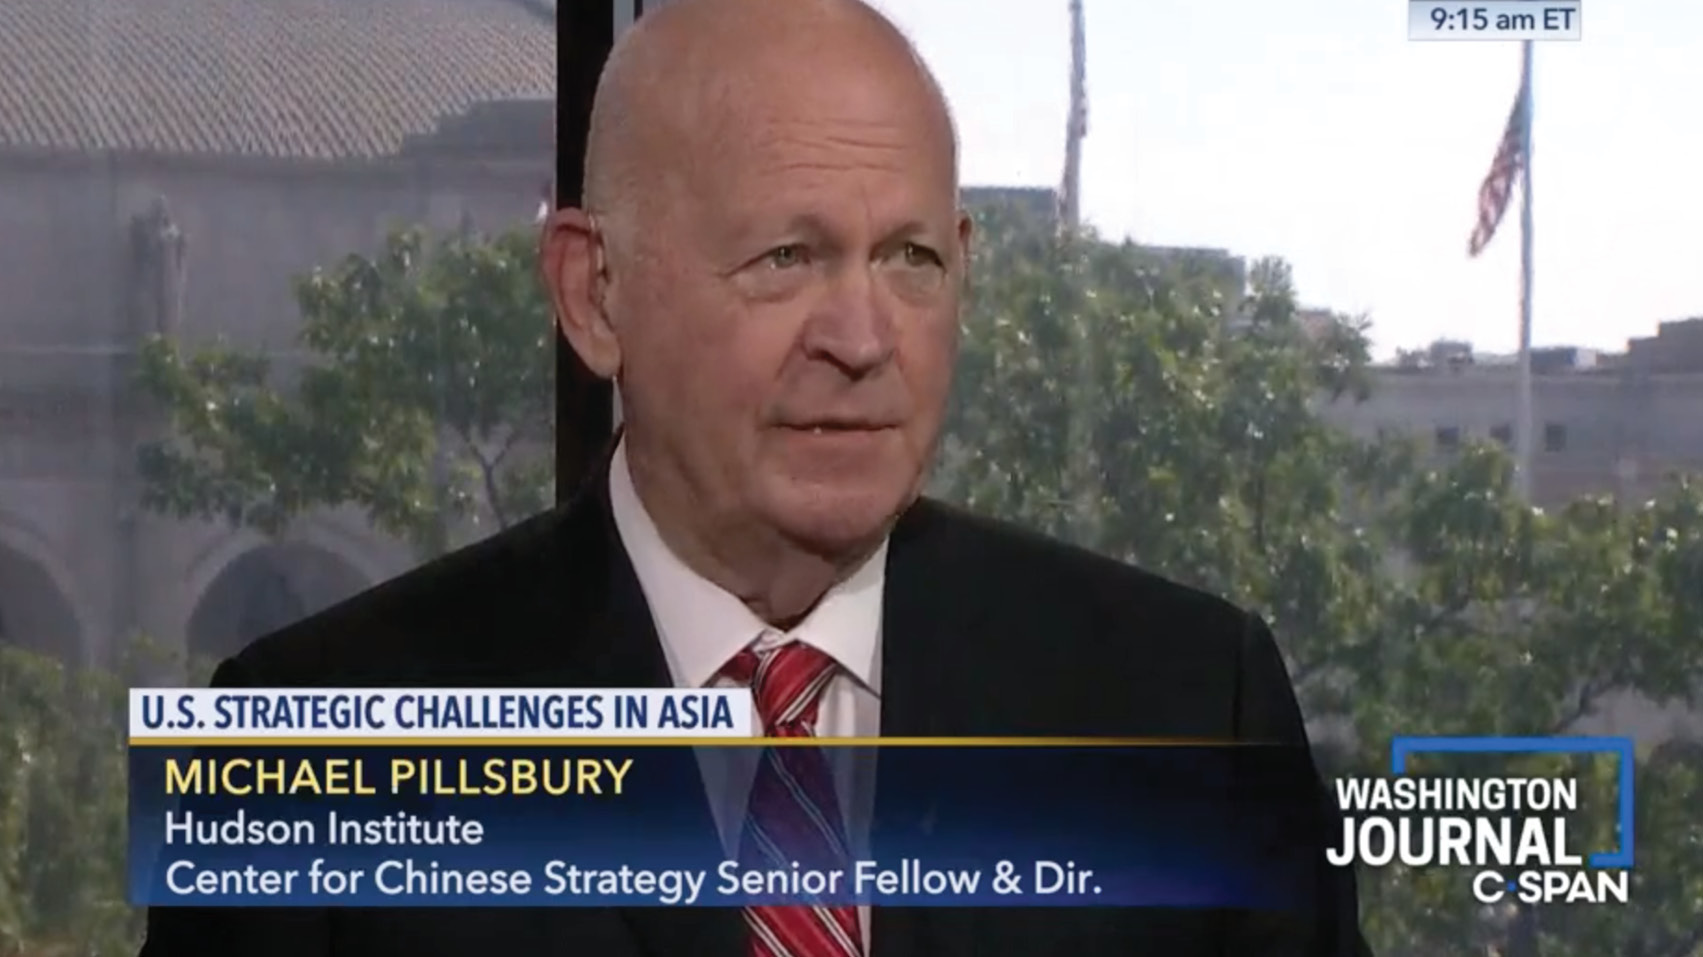 Michael Pillsbury discusses President Trump's trip to Japan, threats from North Korea, and the ongoing U.S.-China trade war.